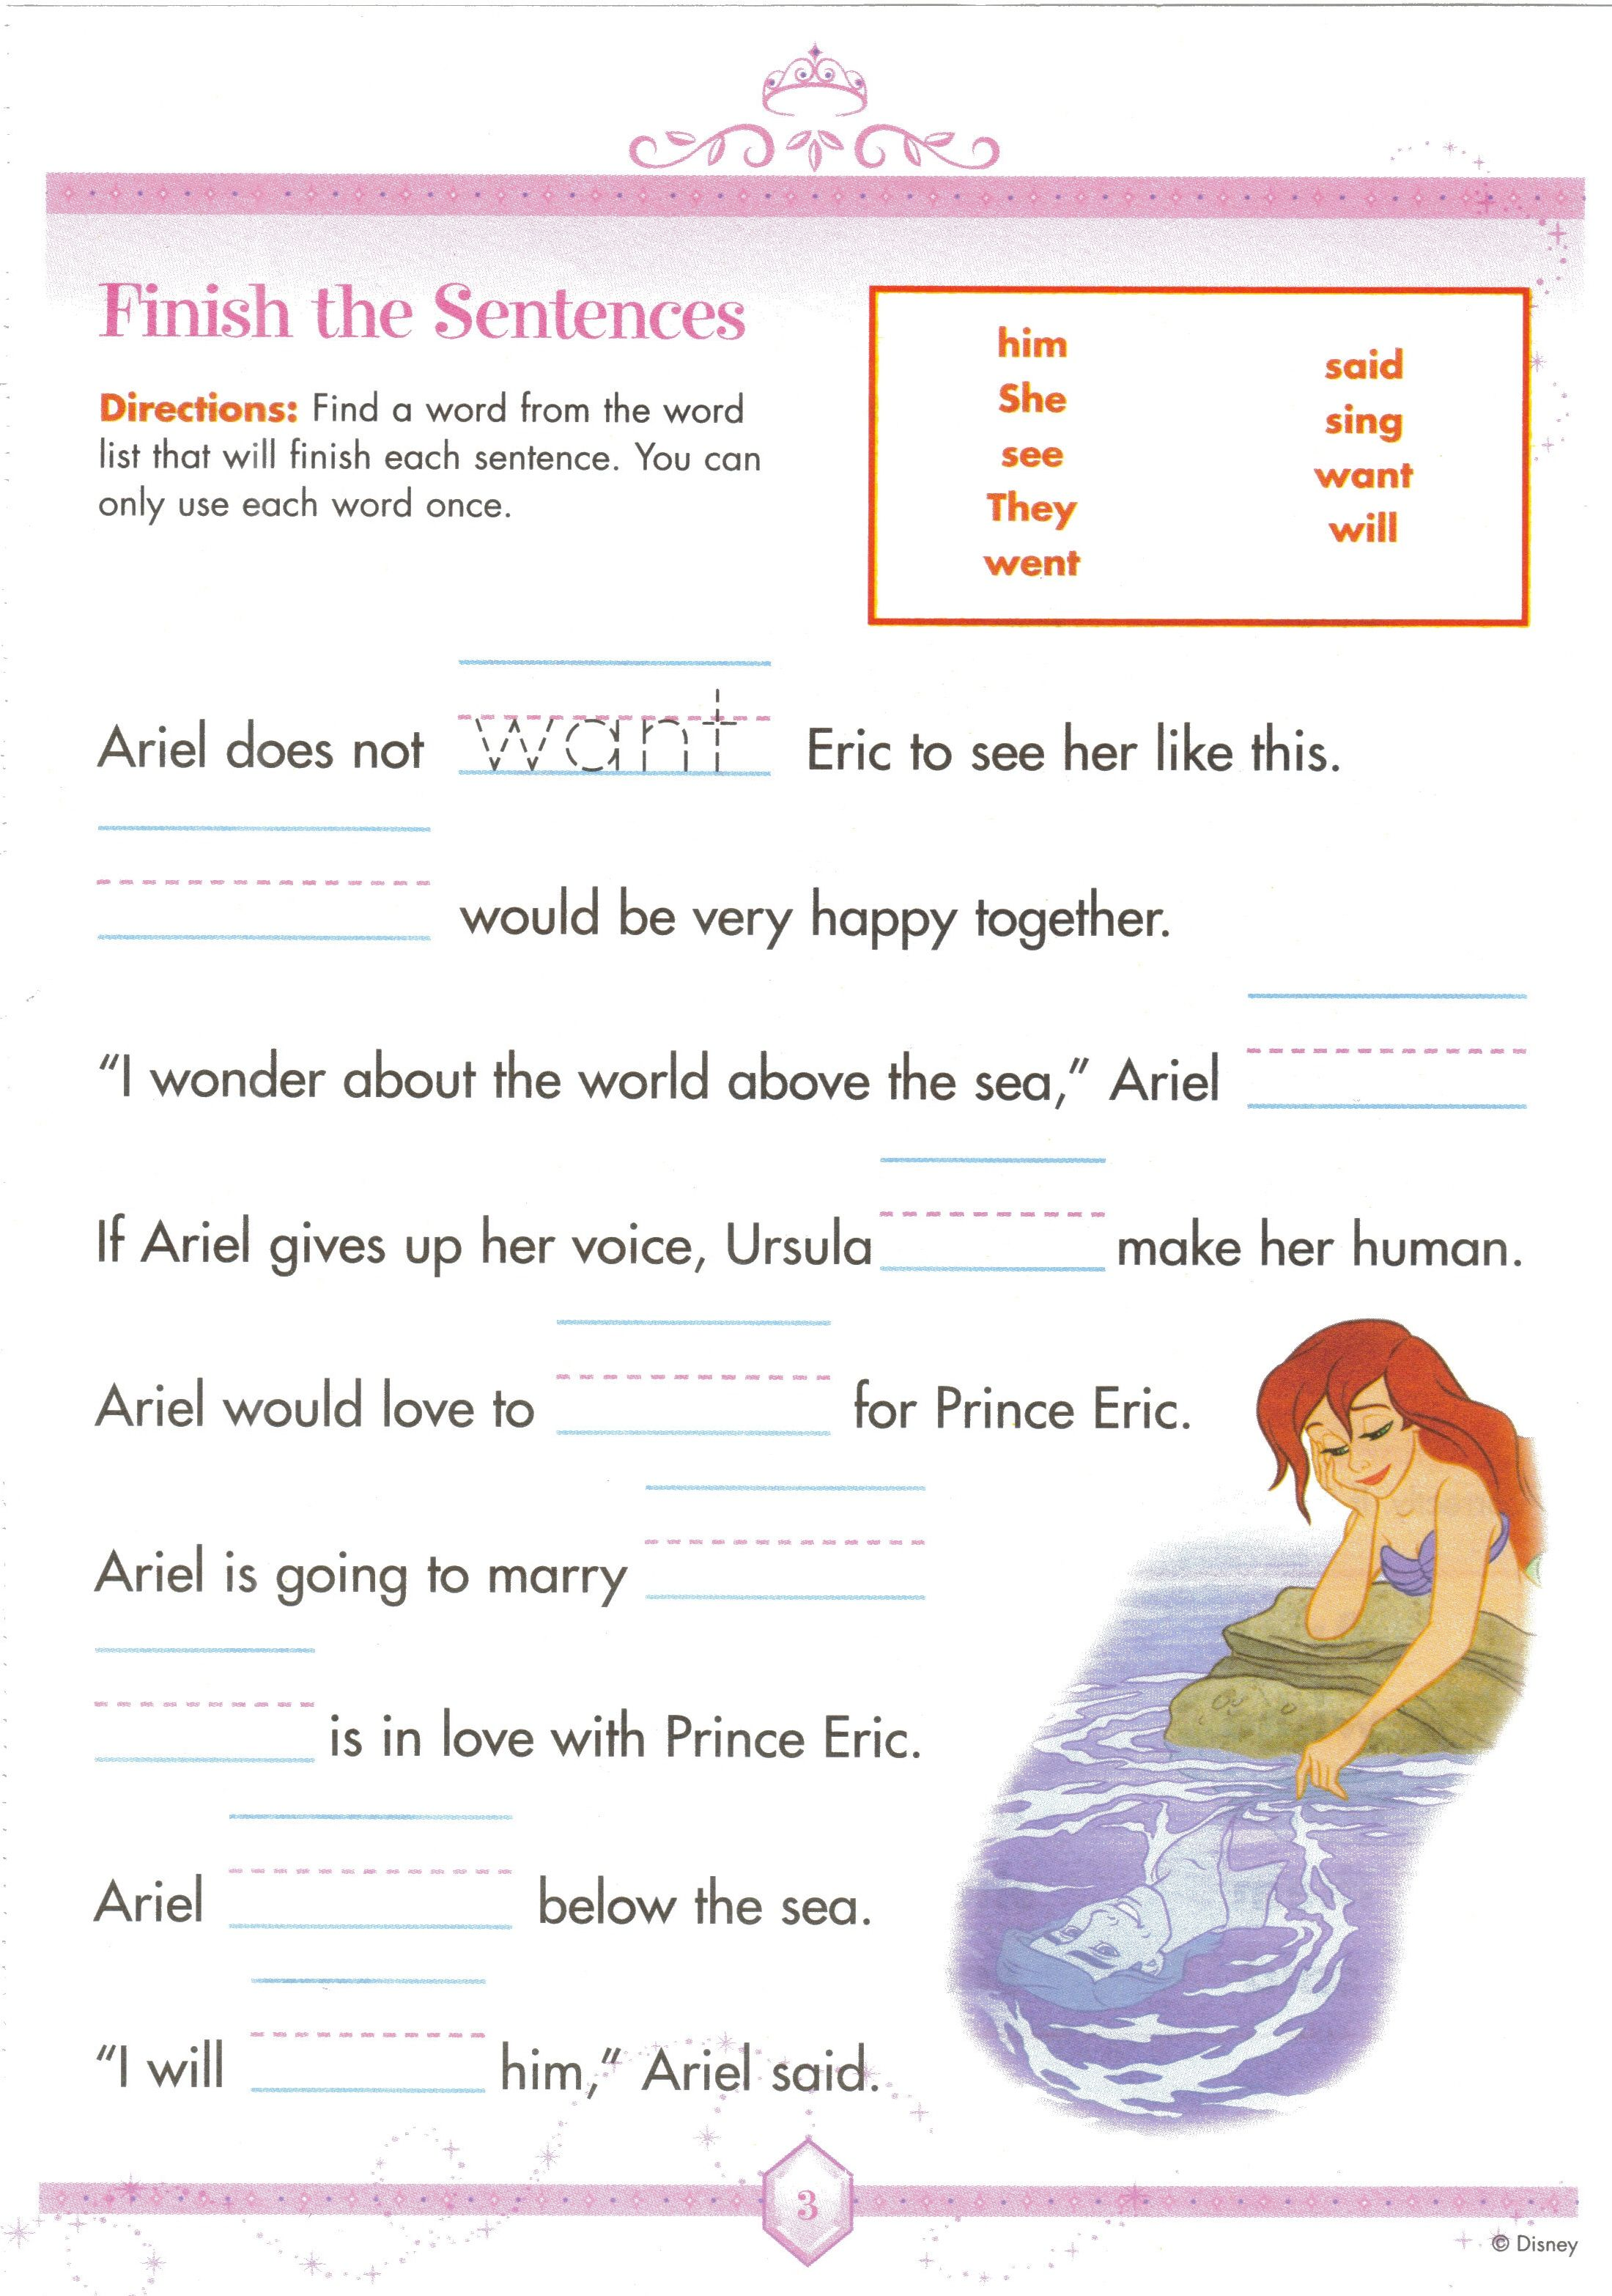 Weirdmailus  Pretty  Images About Worksheets On Pinterest  Fun Facts For Kids  With Magnificent  Images About Worksheets On Pinterest  Fun Facts For Kids Earth Day Worksheets And Jungles With Extraordinary Alliteration Worksheets Ks Also Counting Pictures Worksheets In Addition Printable Worksheets For Esl Students And Context Clues Worksheets Grade  As Well As Worksheet On Multiplying And Dividing Integers Additionally Create Time Worksheets From Pinterestcom With Weirdmailus  Magnificent  Images About Worksheets On Pinterest  Fun Facts For Kids  With Extraordinary  Images About Worksheets On Pinterest  Fun Facts For Kids Earth Day Worksheets And Jungles And Pretty Alliteration Worksheets Ks Also Counting Pictures Worksheets In Addition Printable Worksheets For Esl Students From Pinterestcom